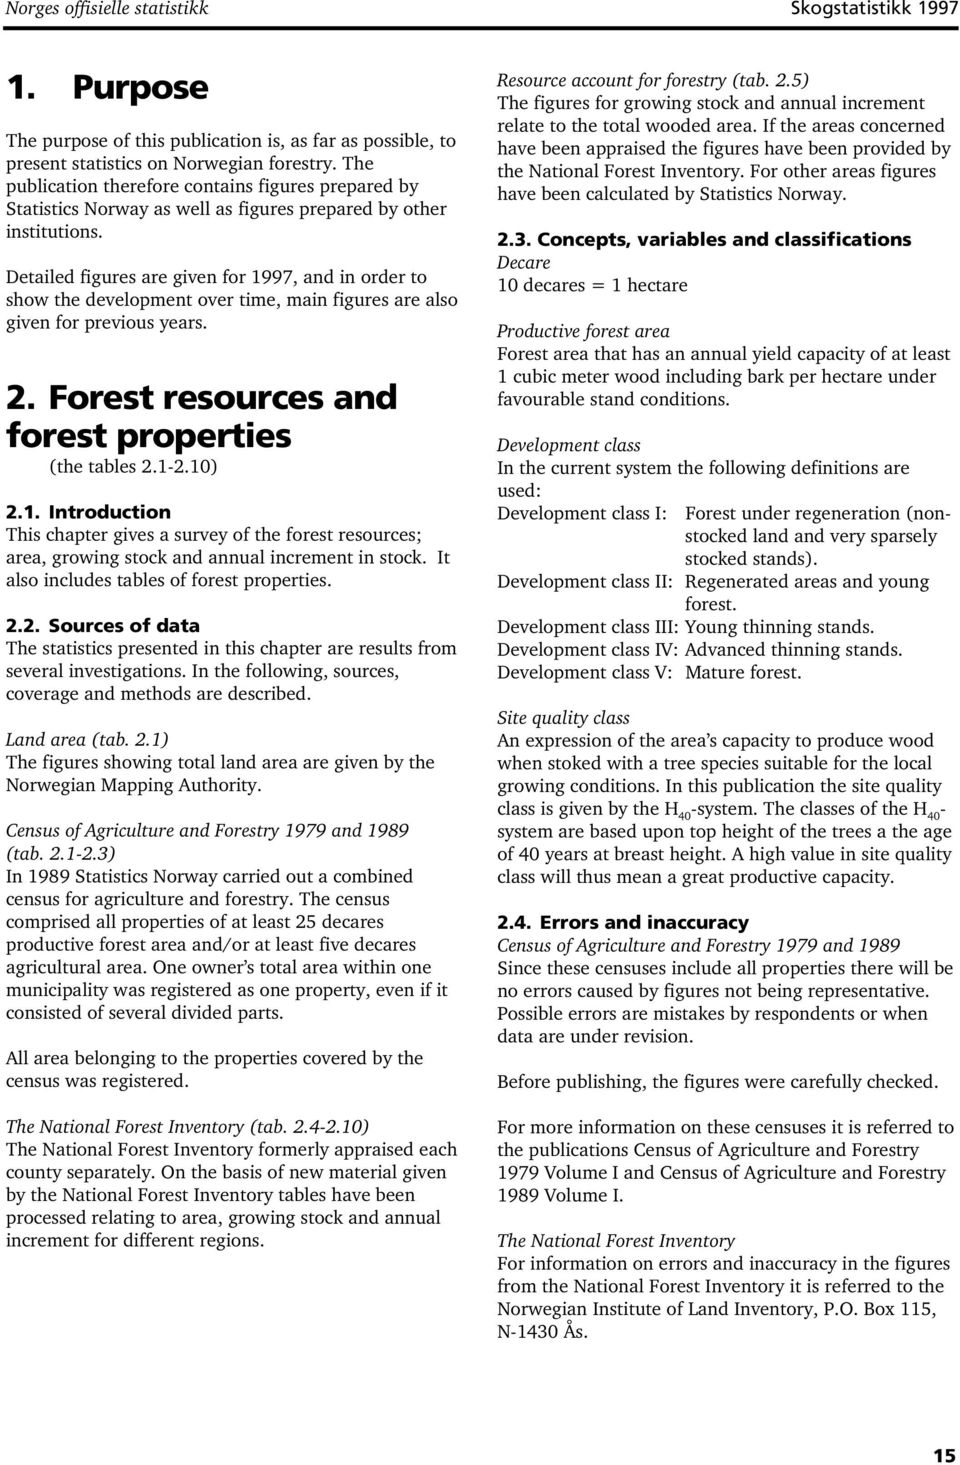 Detailed figures are given for 997, and in order to show the development over time, main figures are also given for previous years. 2. Forest resources and forest properties (the tables 2.-2.0) 2.